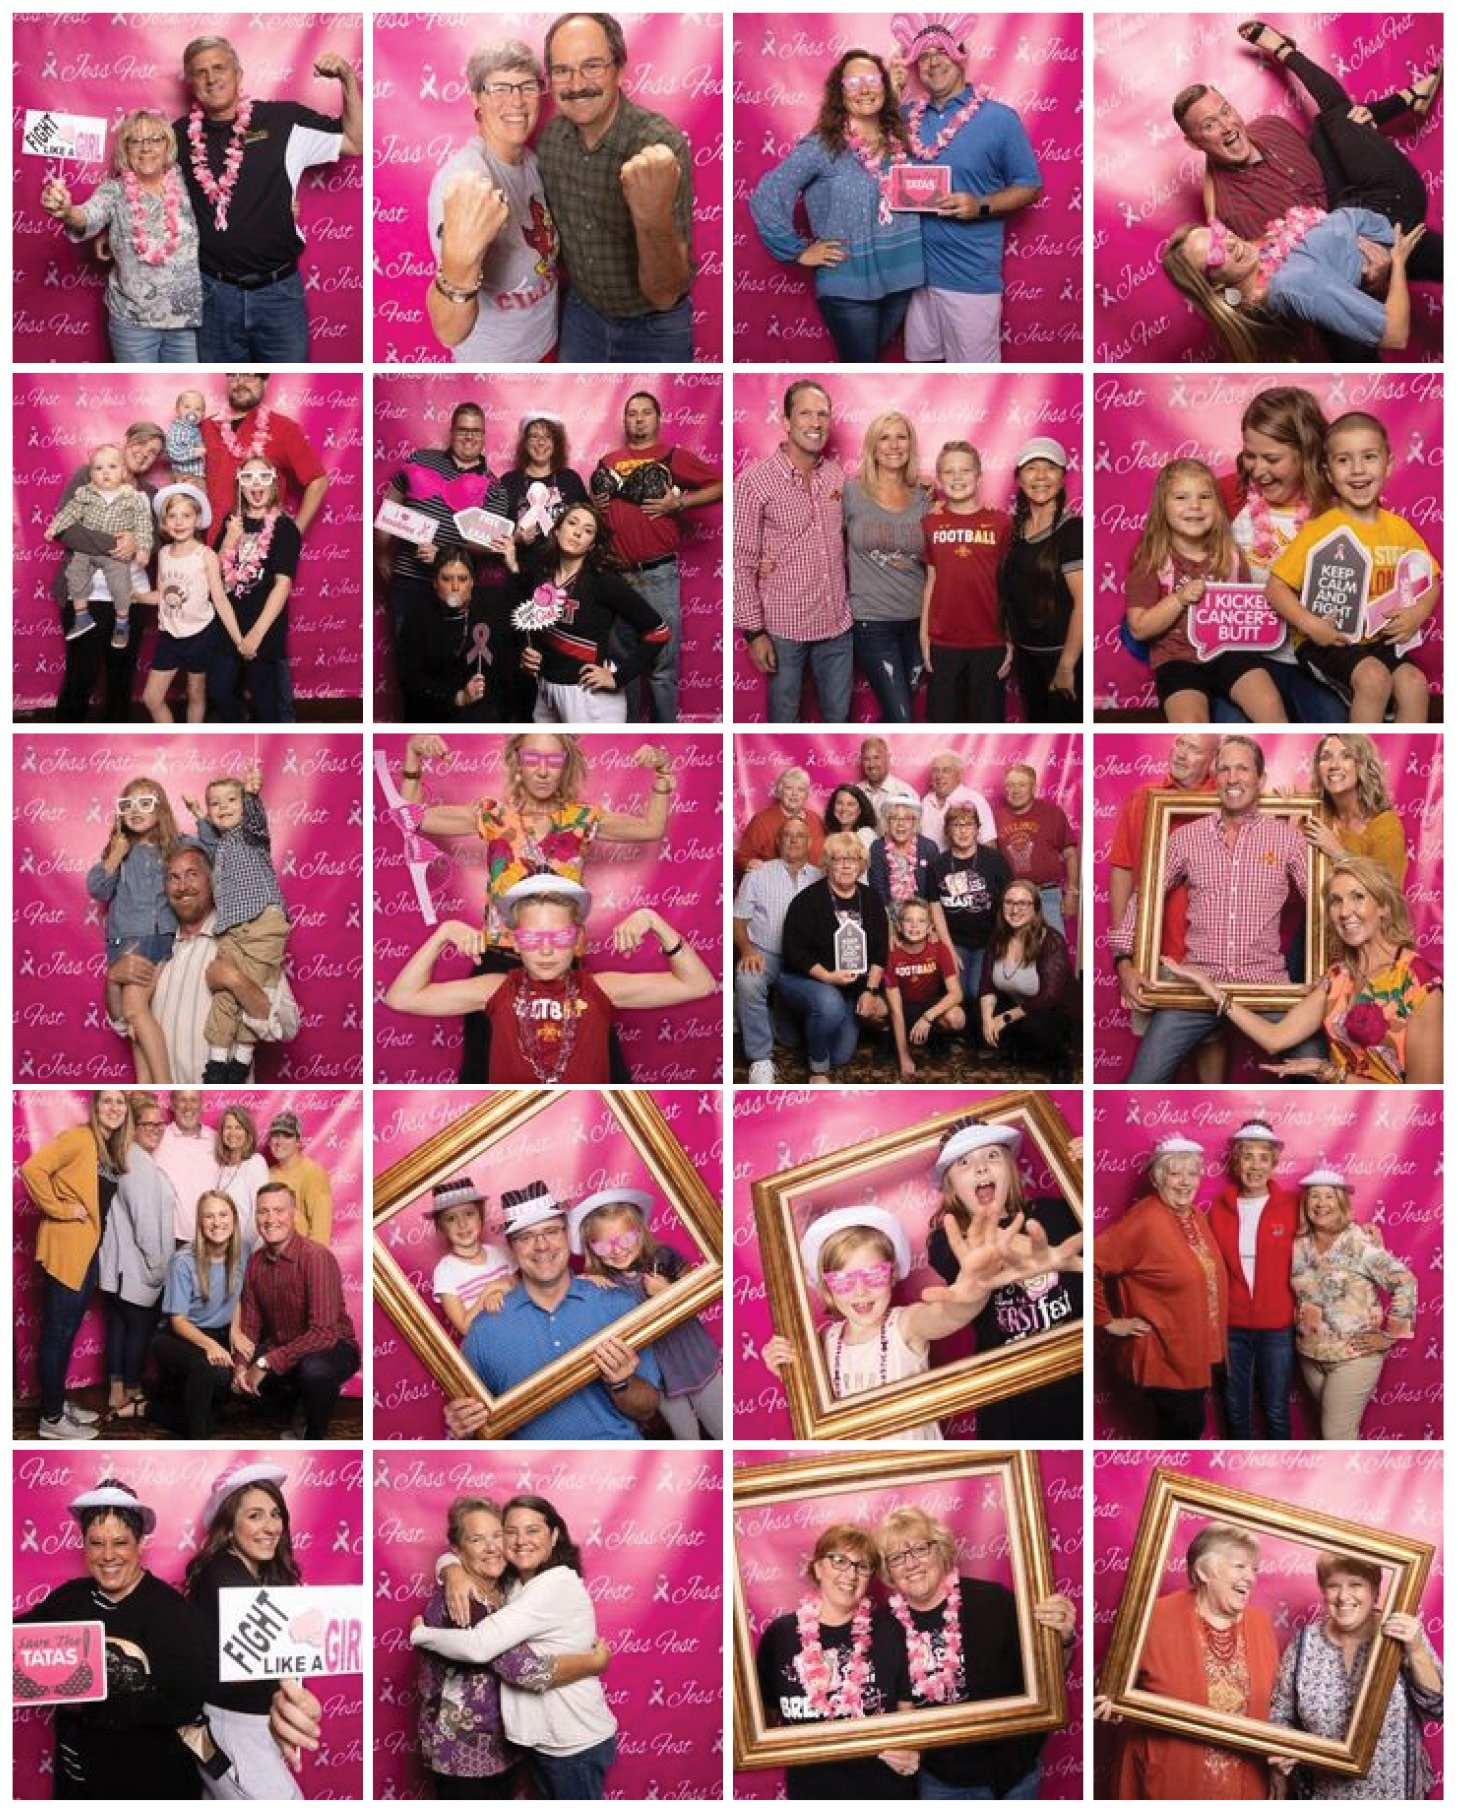 Collage of JessFest photos, various people on a pink background.